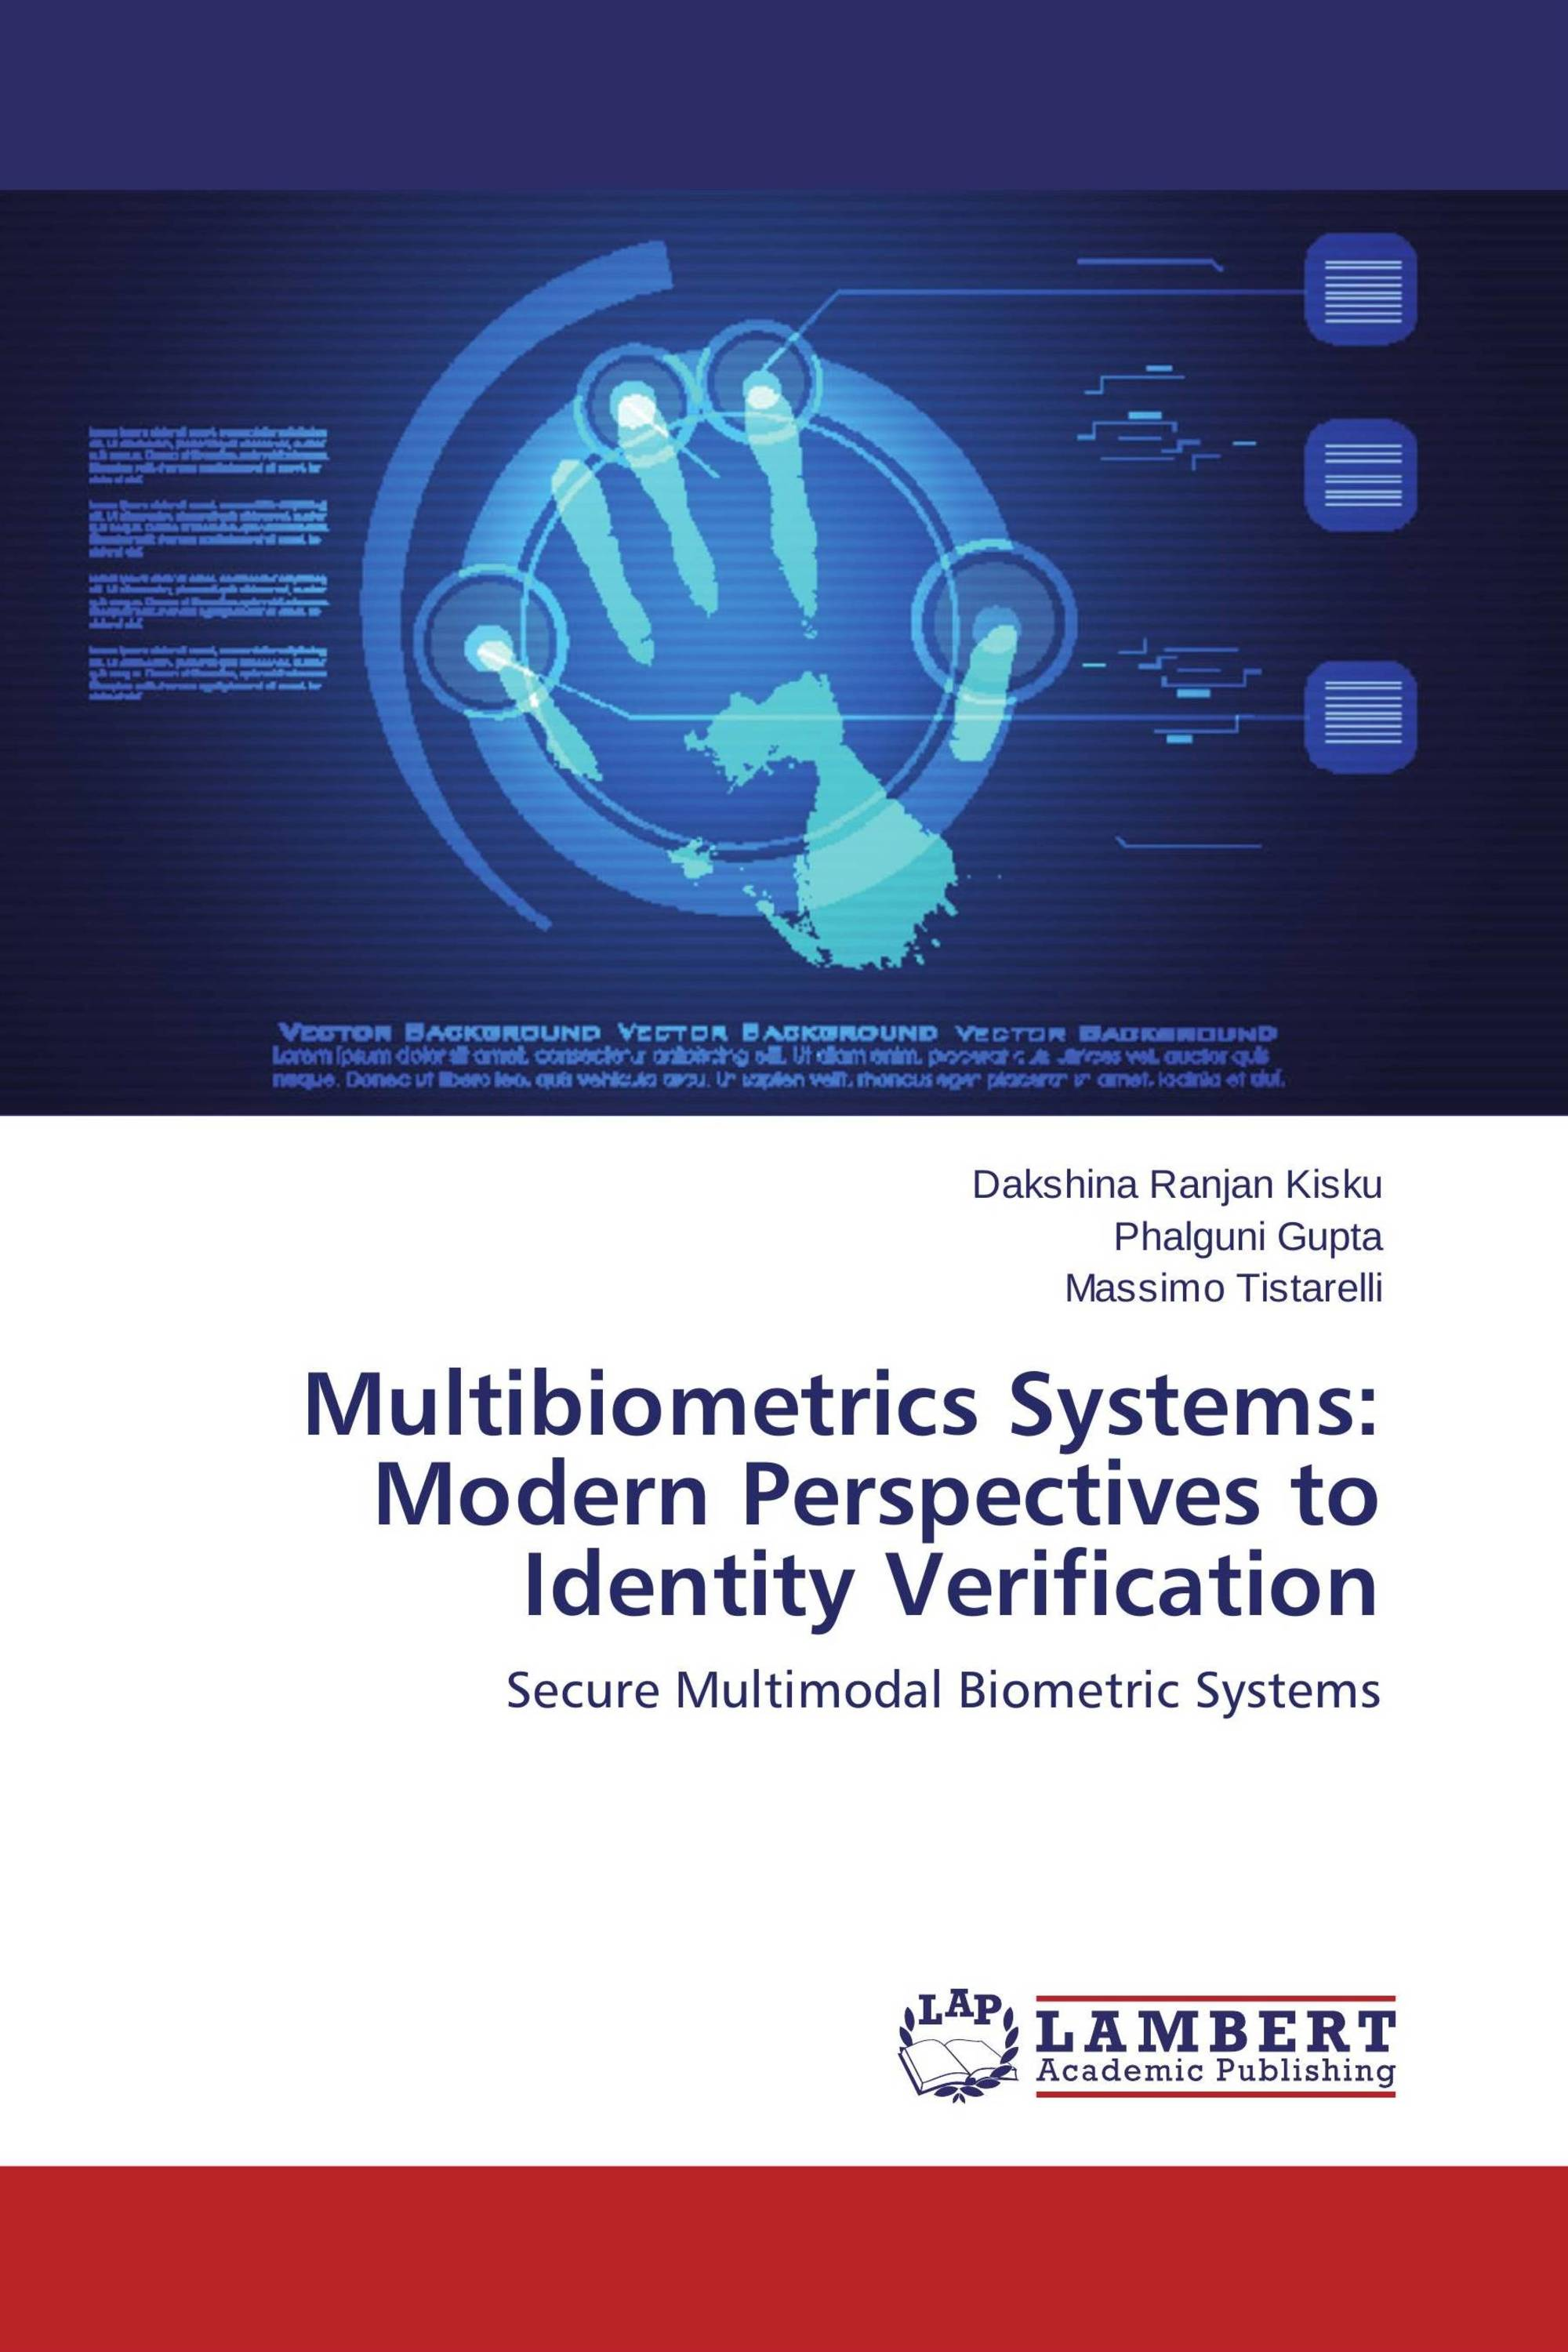 Multibiometrics Systems: Modern Perspectives to Identity Verification